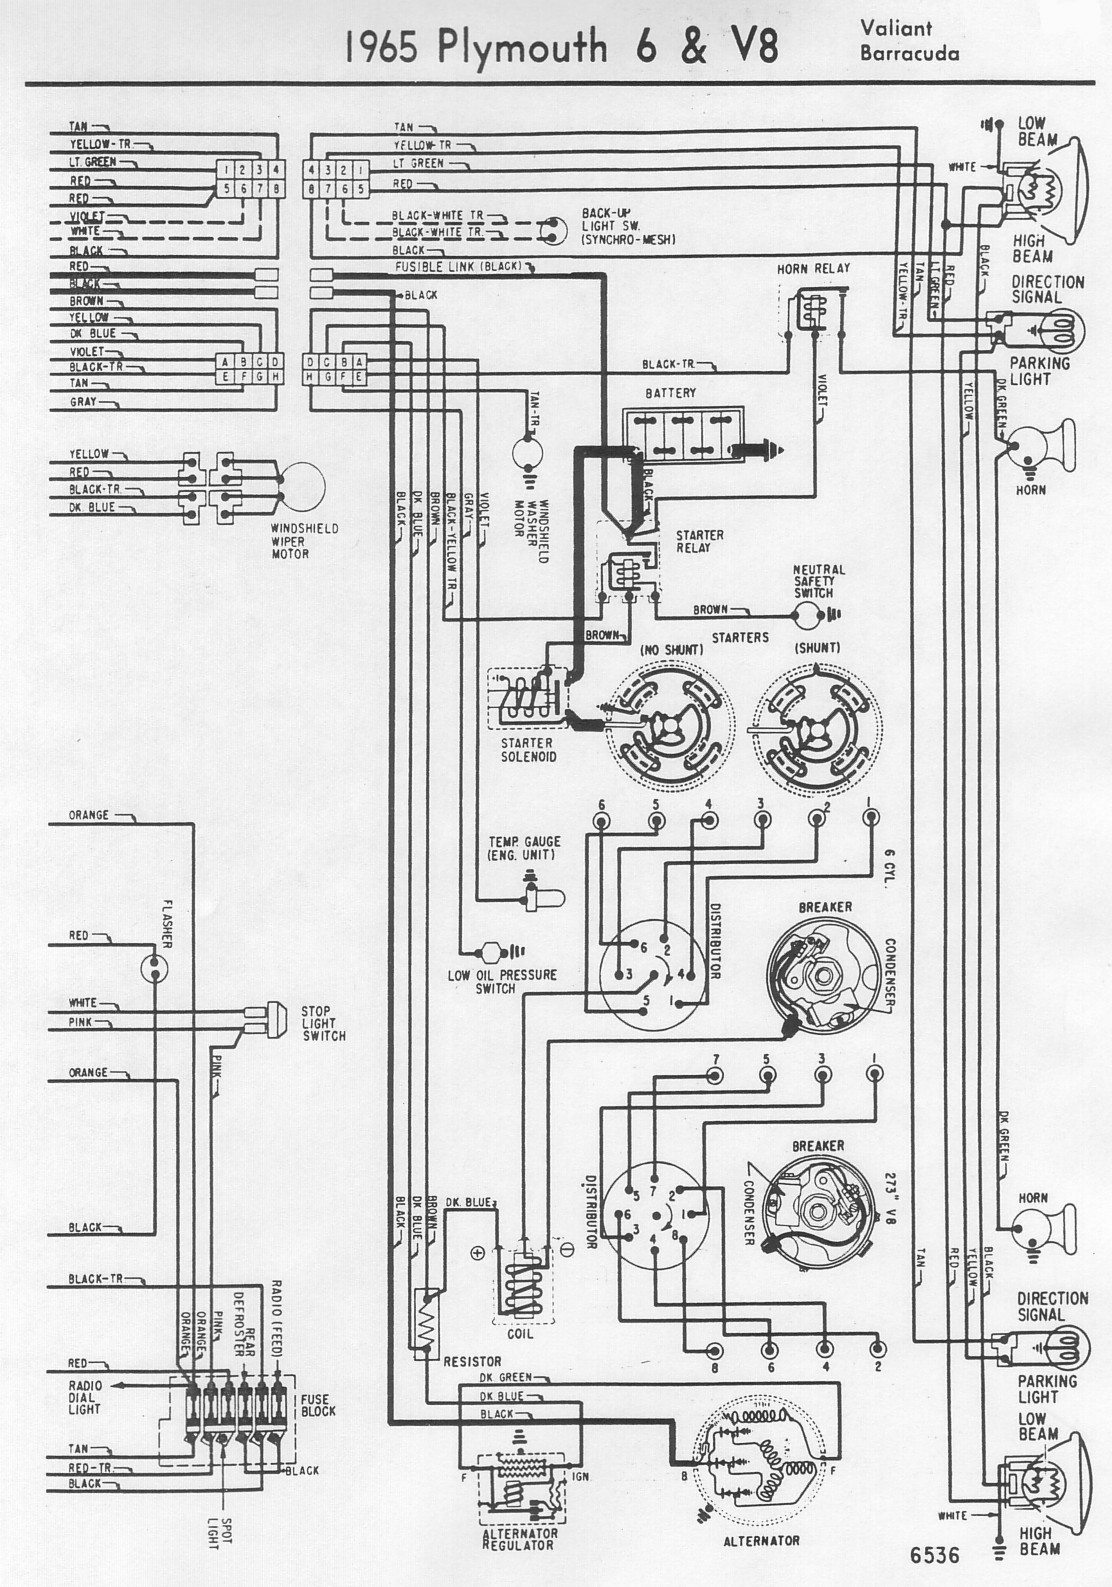 65ValiantBarracudaB 1973 plymouth wiring diagram 1973 wiring diagrams instruction 70 cuda wiring diagram at fashall.co